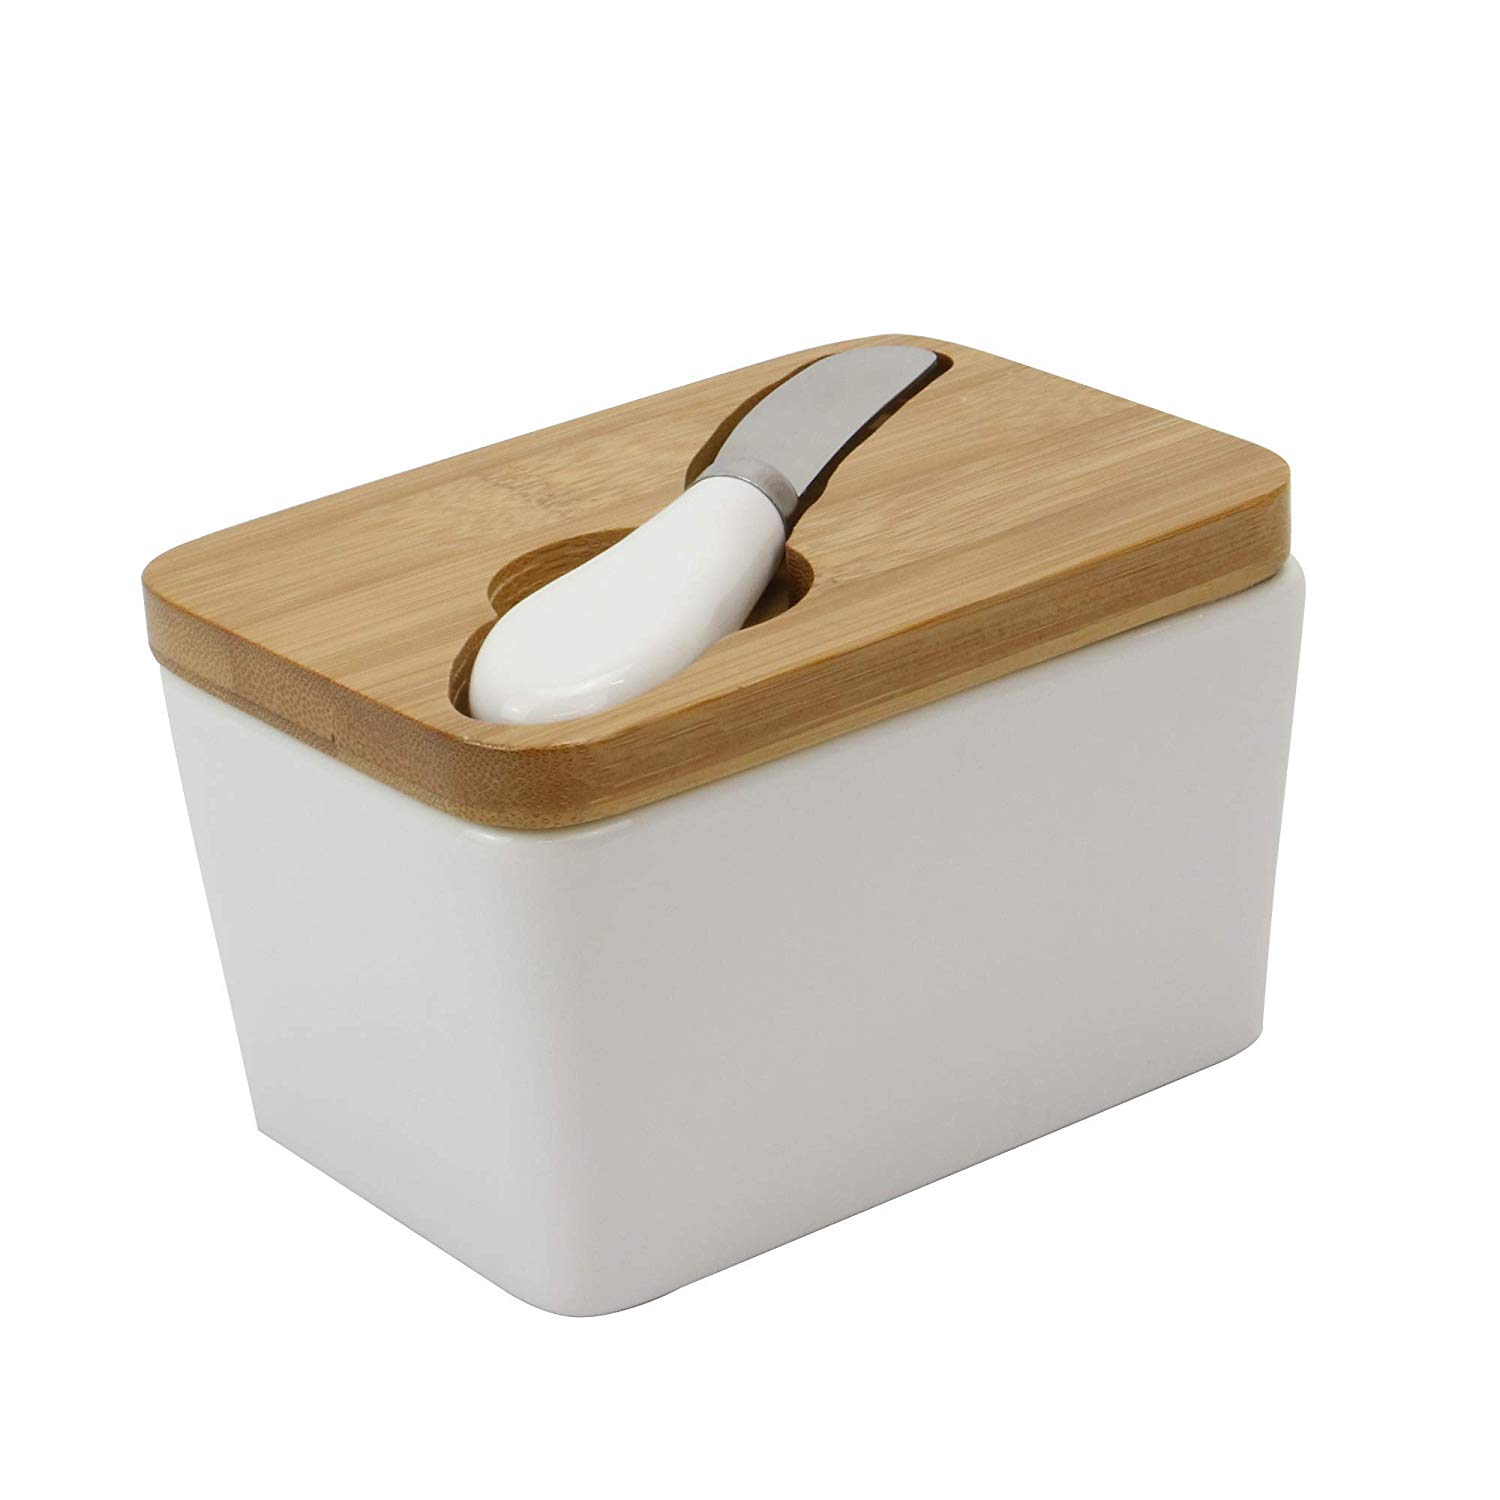 Porcelain butter dish with wooden lid, with a butter knife slotted into the lid